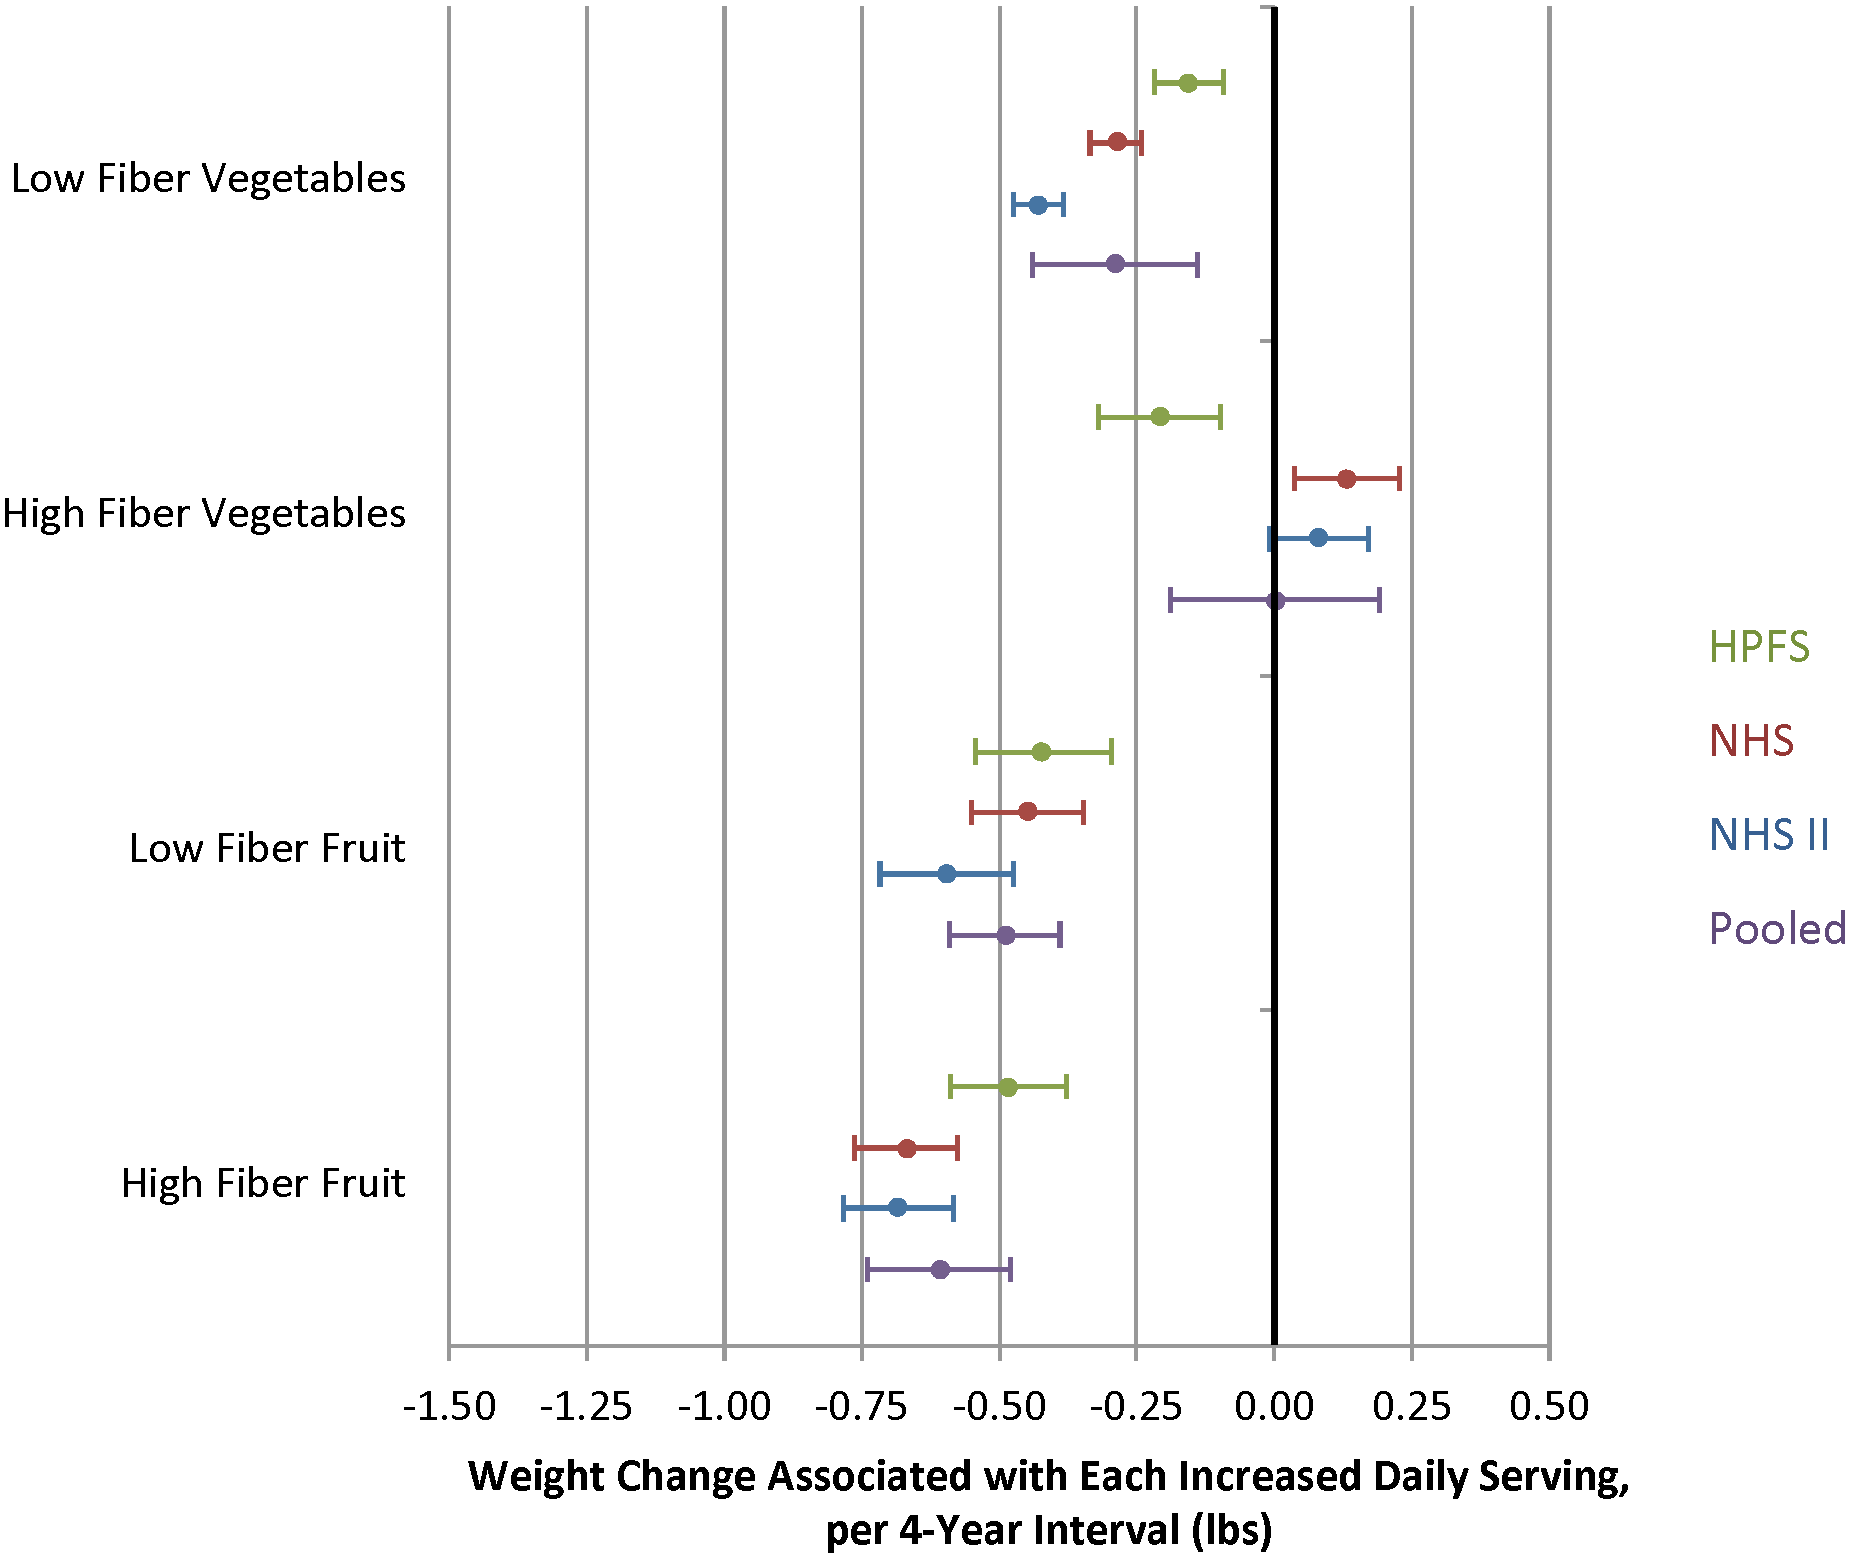 Relationships between changes in intake of fruits and vegetables classified as either low or high fiber and weight change over 4 y in three cohorts.